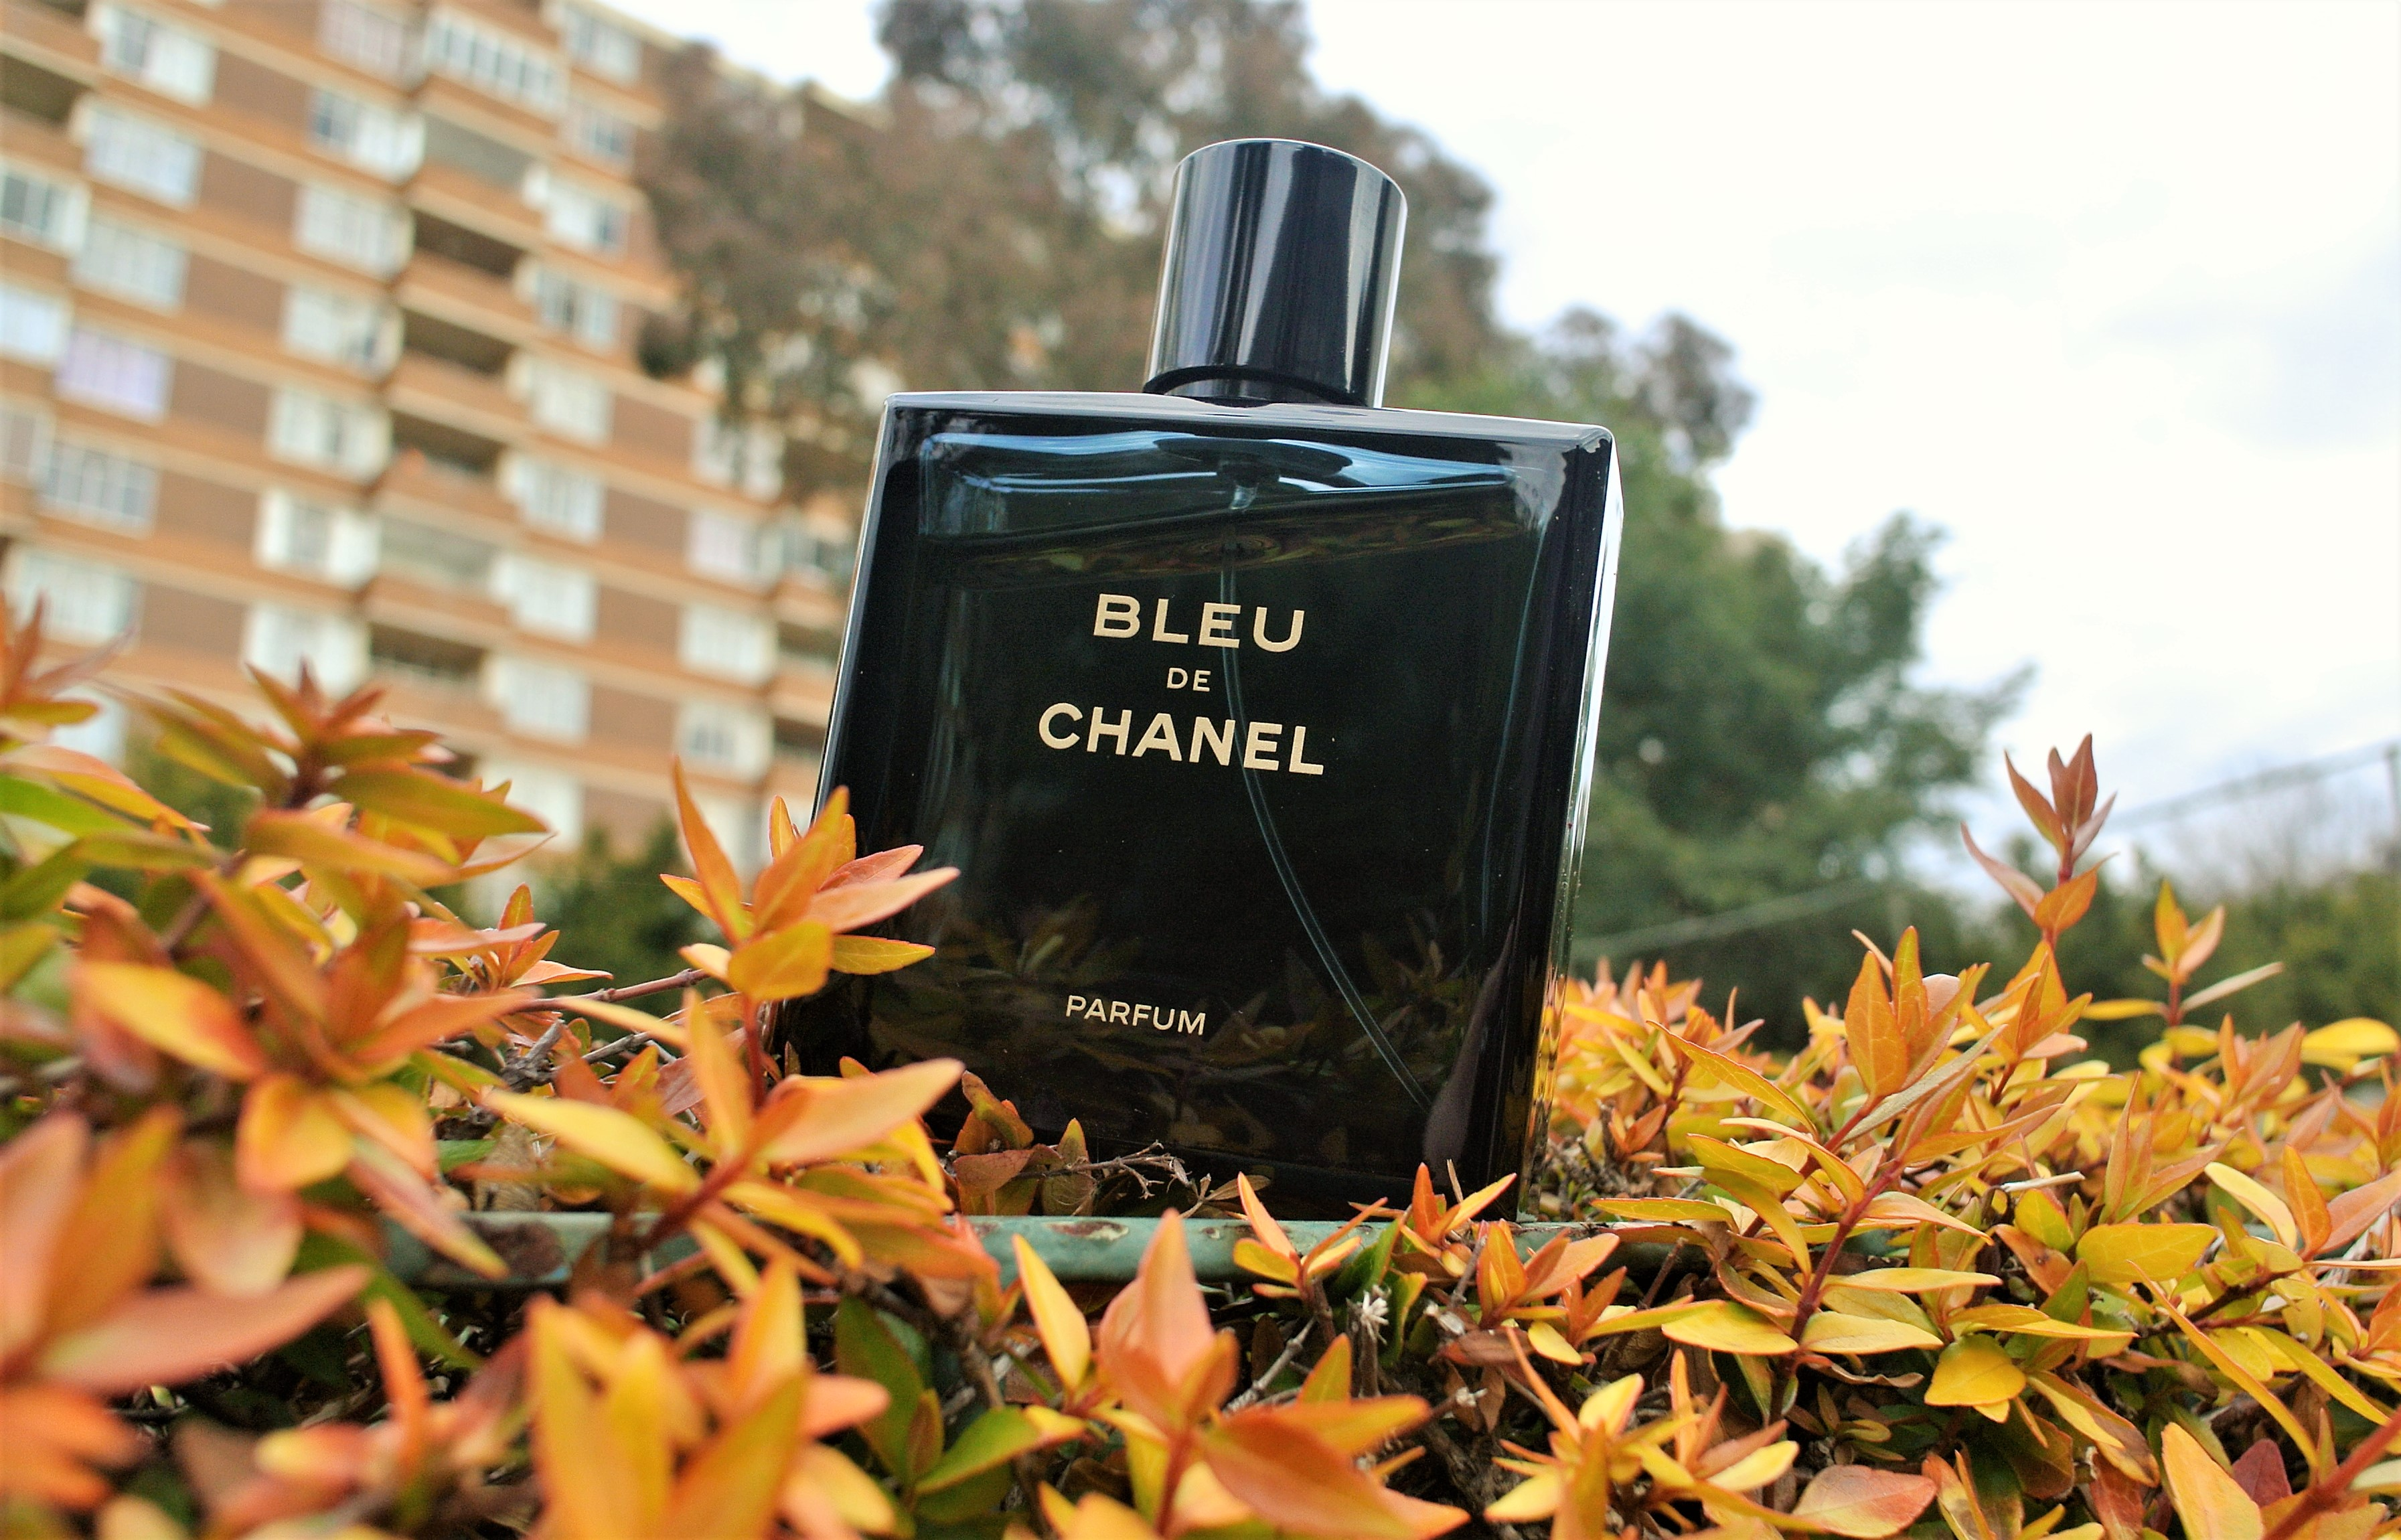 f4c3325422 Bleu de Chanel Parfum Review: What The New Version Has To Offer